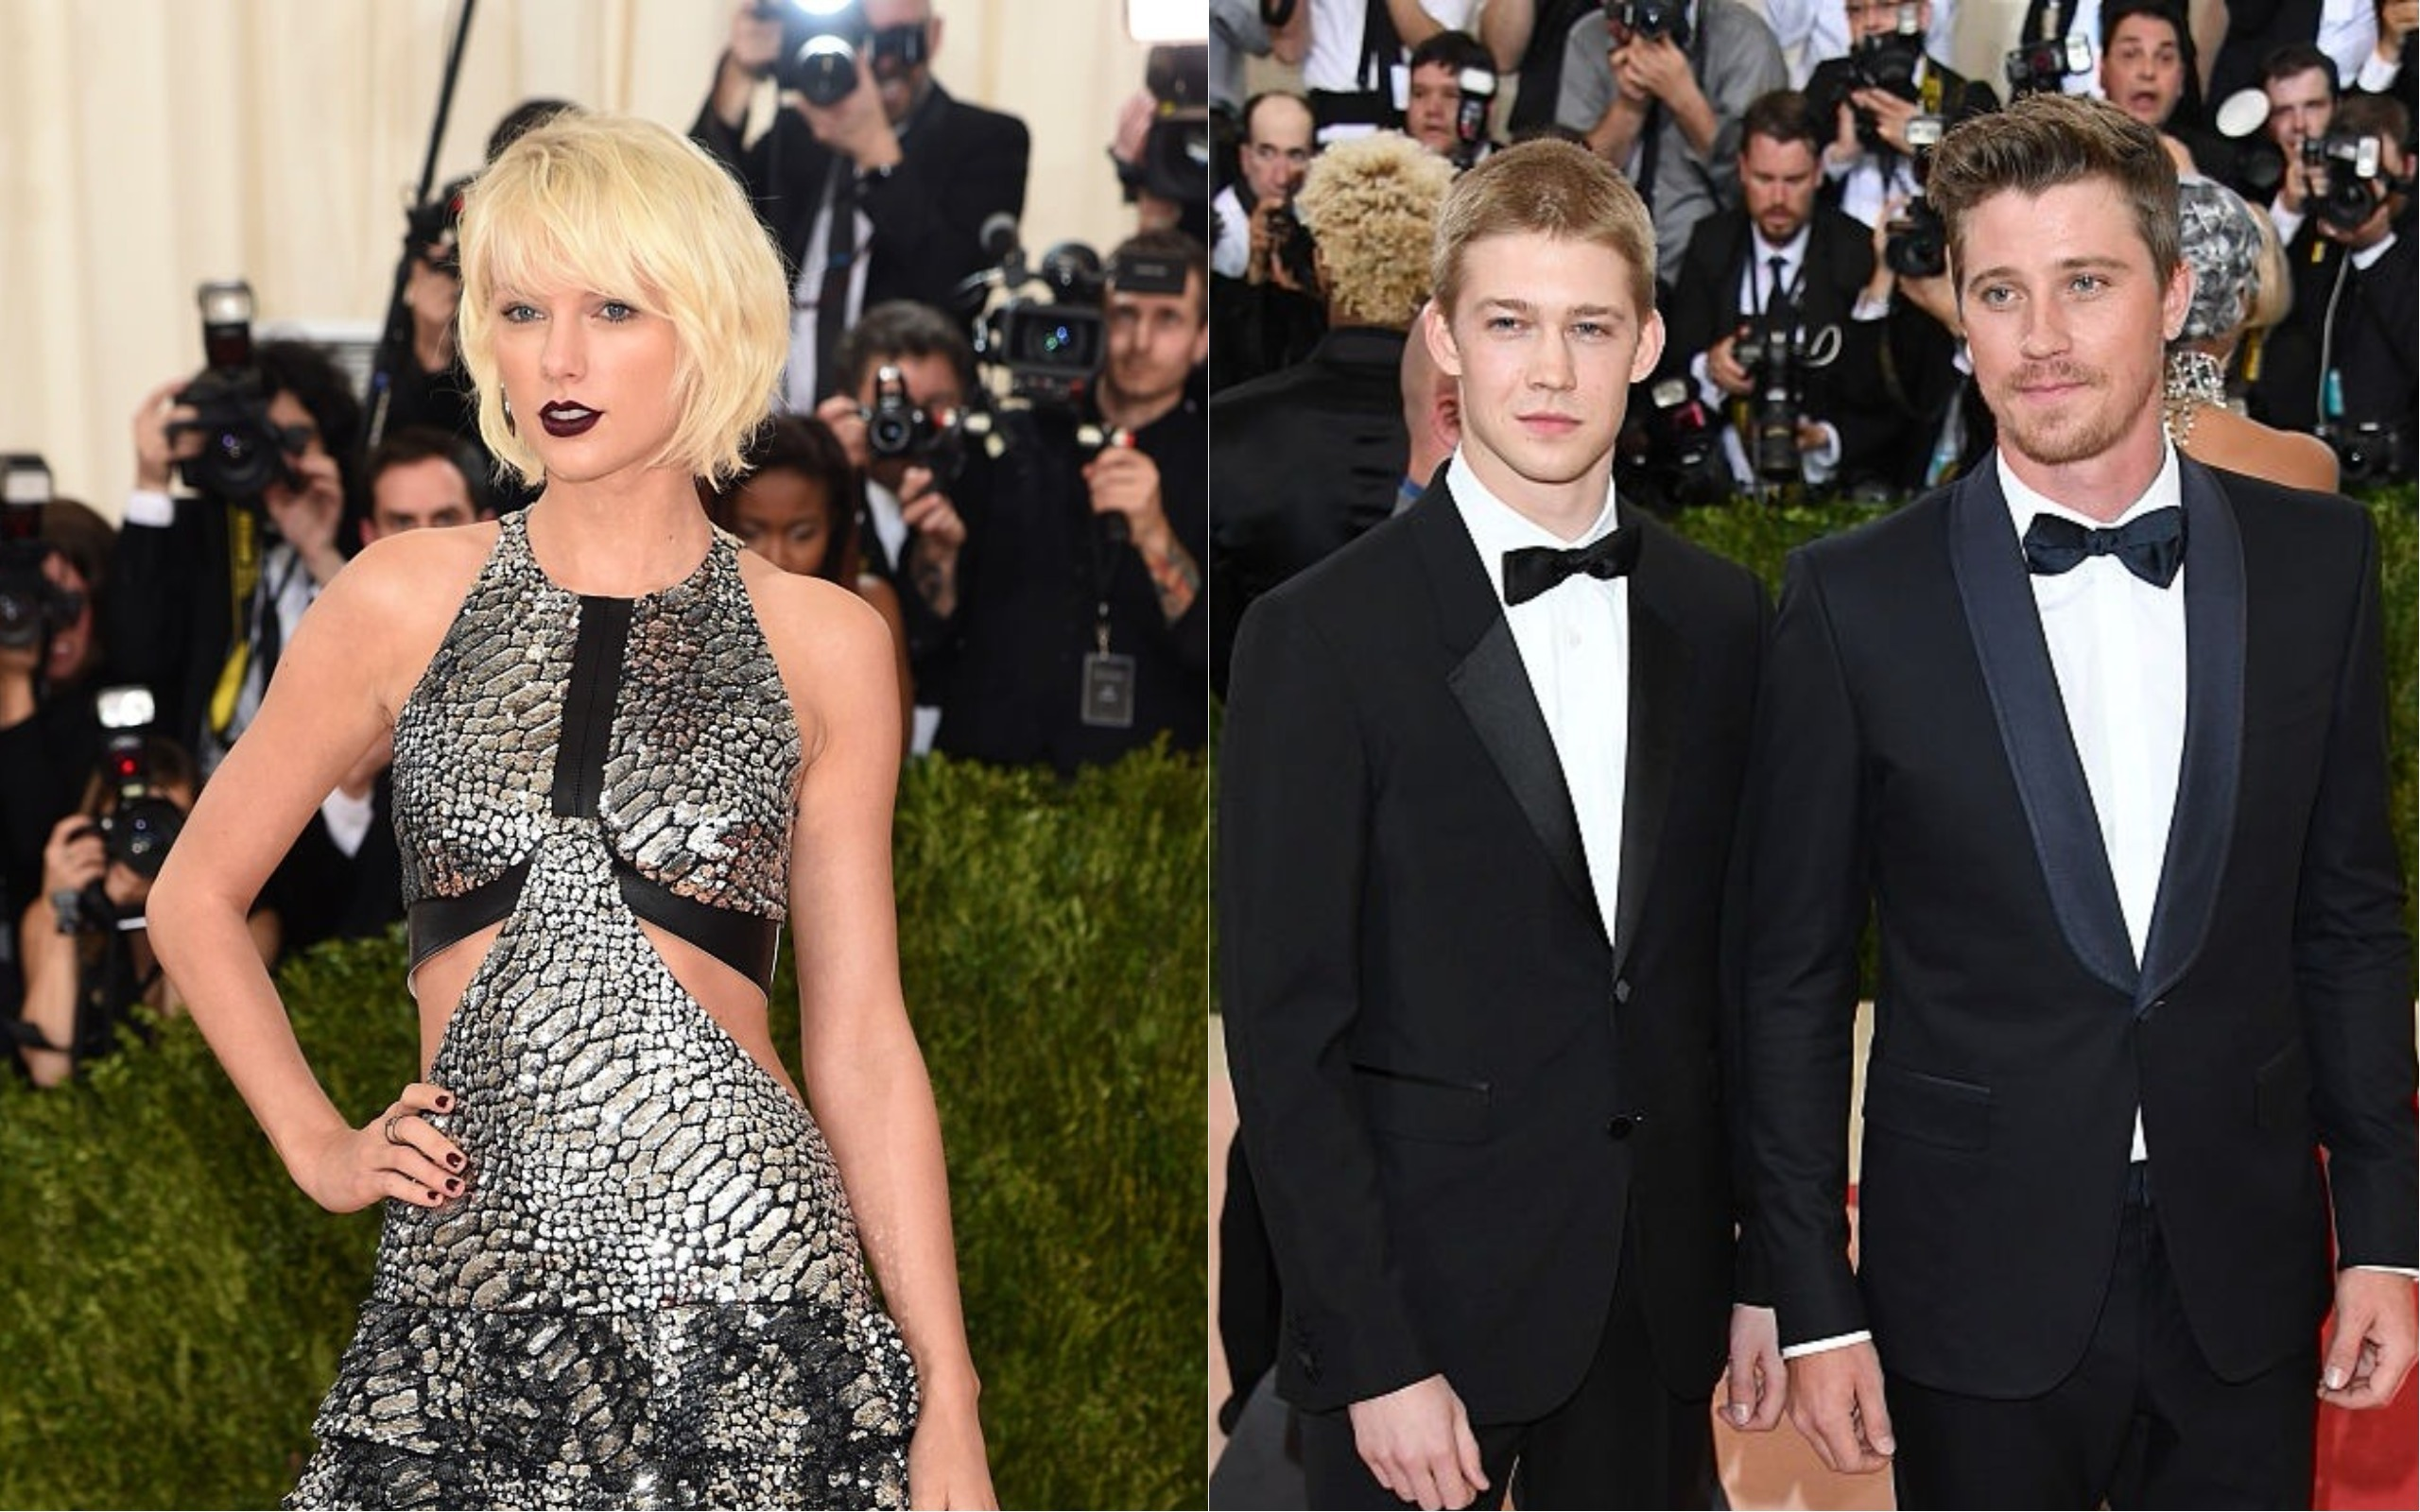 Tom Tailor Winter Love A Fashion Friend A Timeline Of Taylor Swift And Joe Alwyn S Relationship Hellogiggles